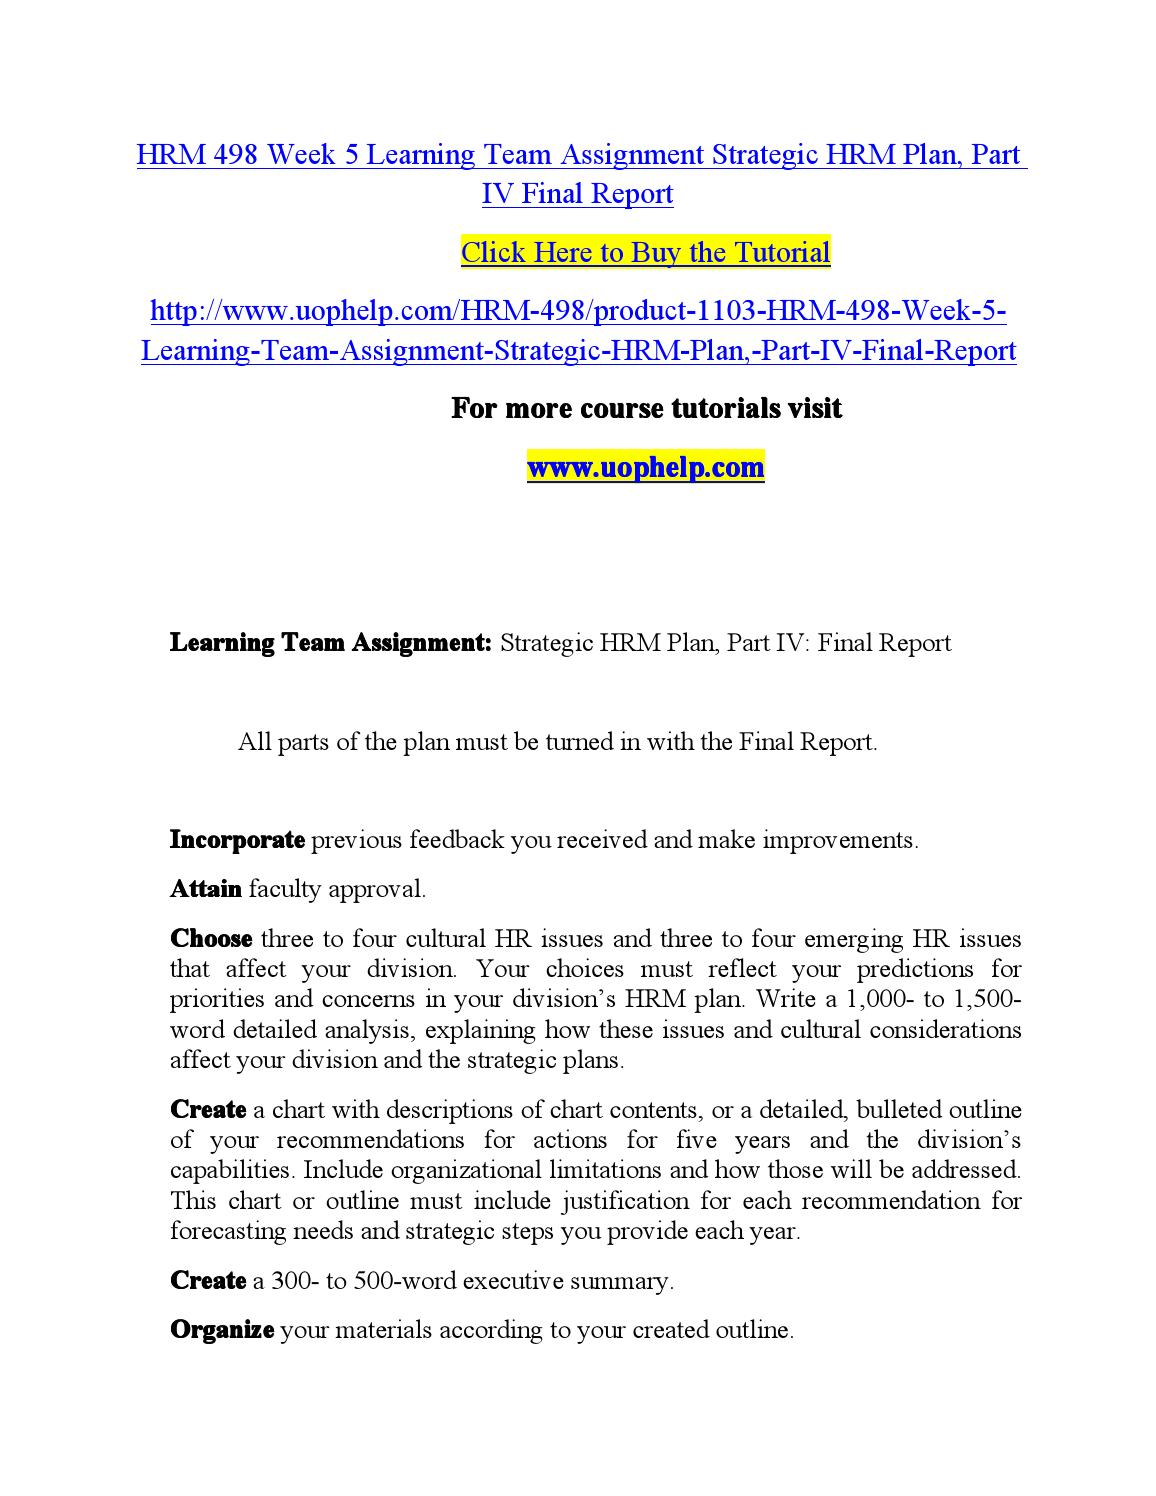 Hrm 498 week 5 learning team assignment strategic hrm plan, part iv ...